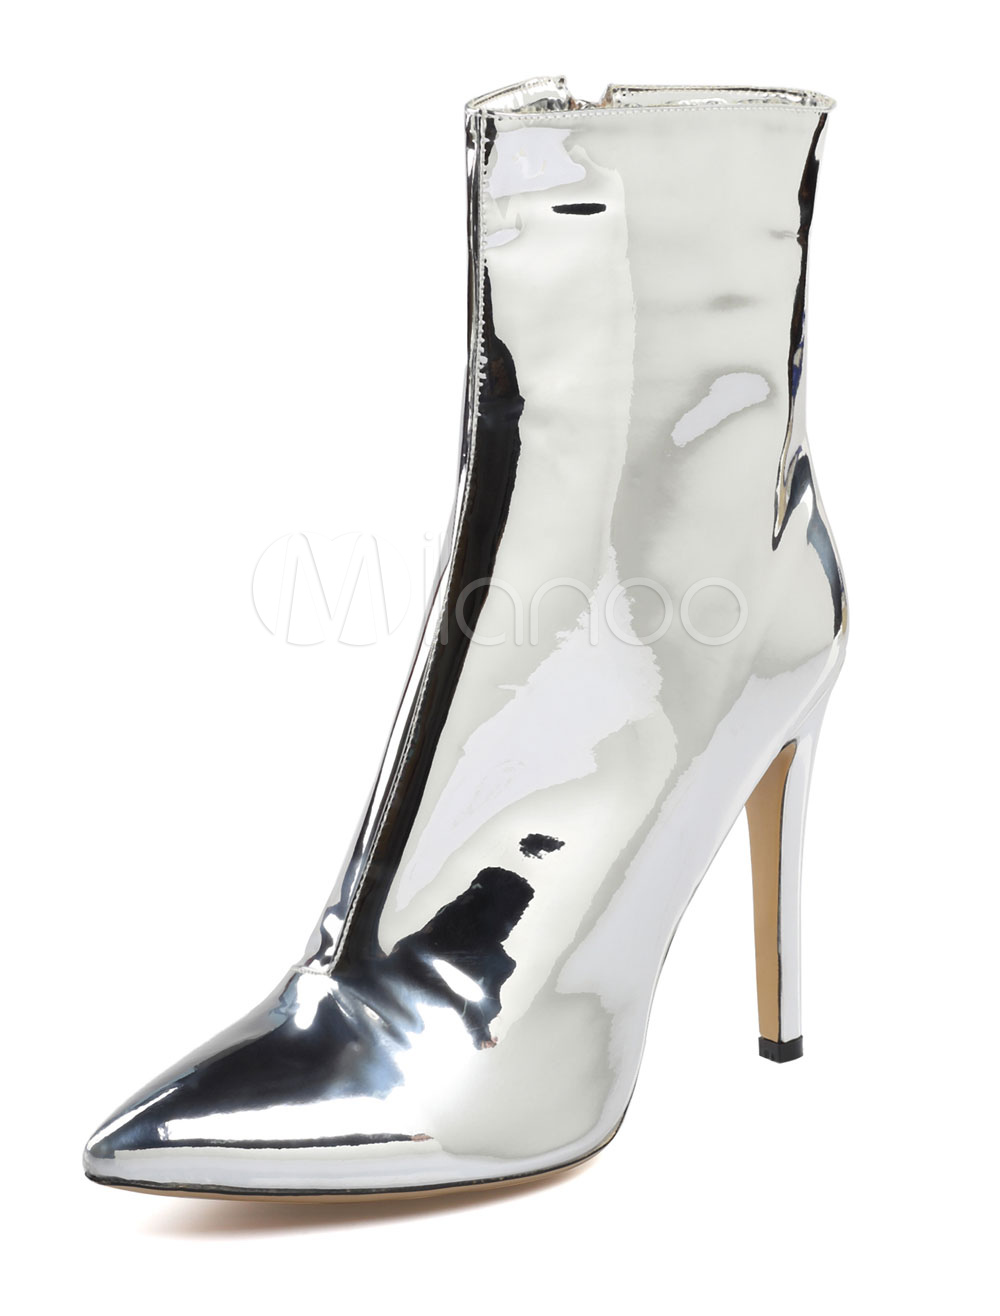 Buy Women's Ankle Boots High Heel Silver Pointed Toe Patent PU Zip Up Booties for $89.24 in Milanoo store